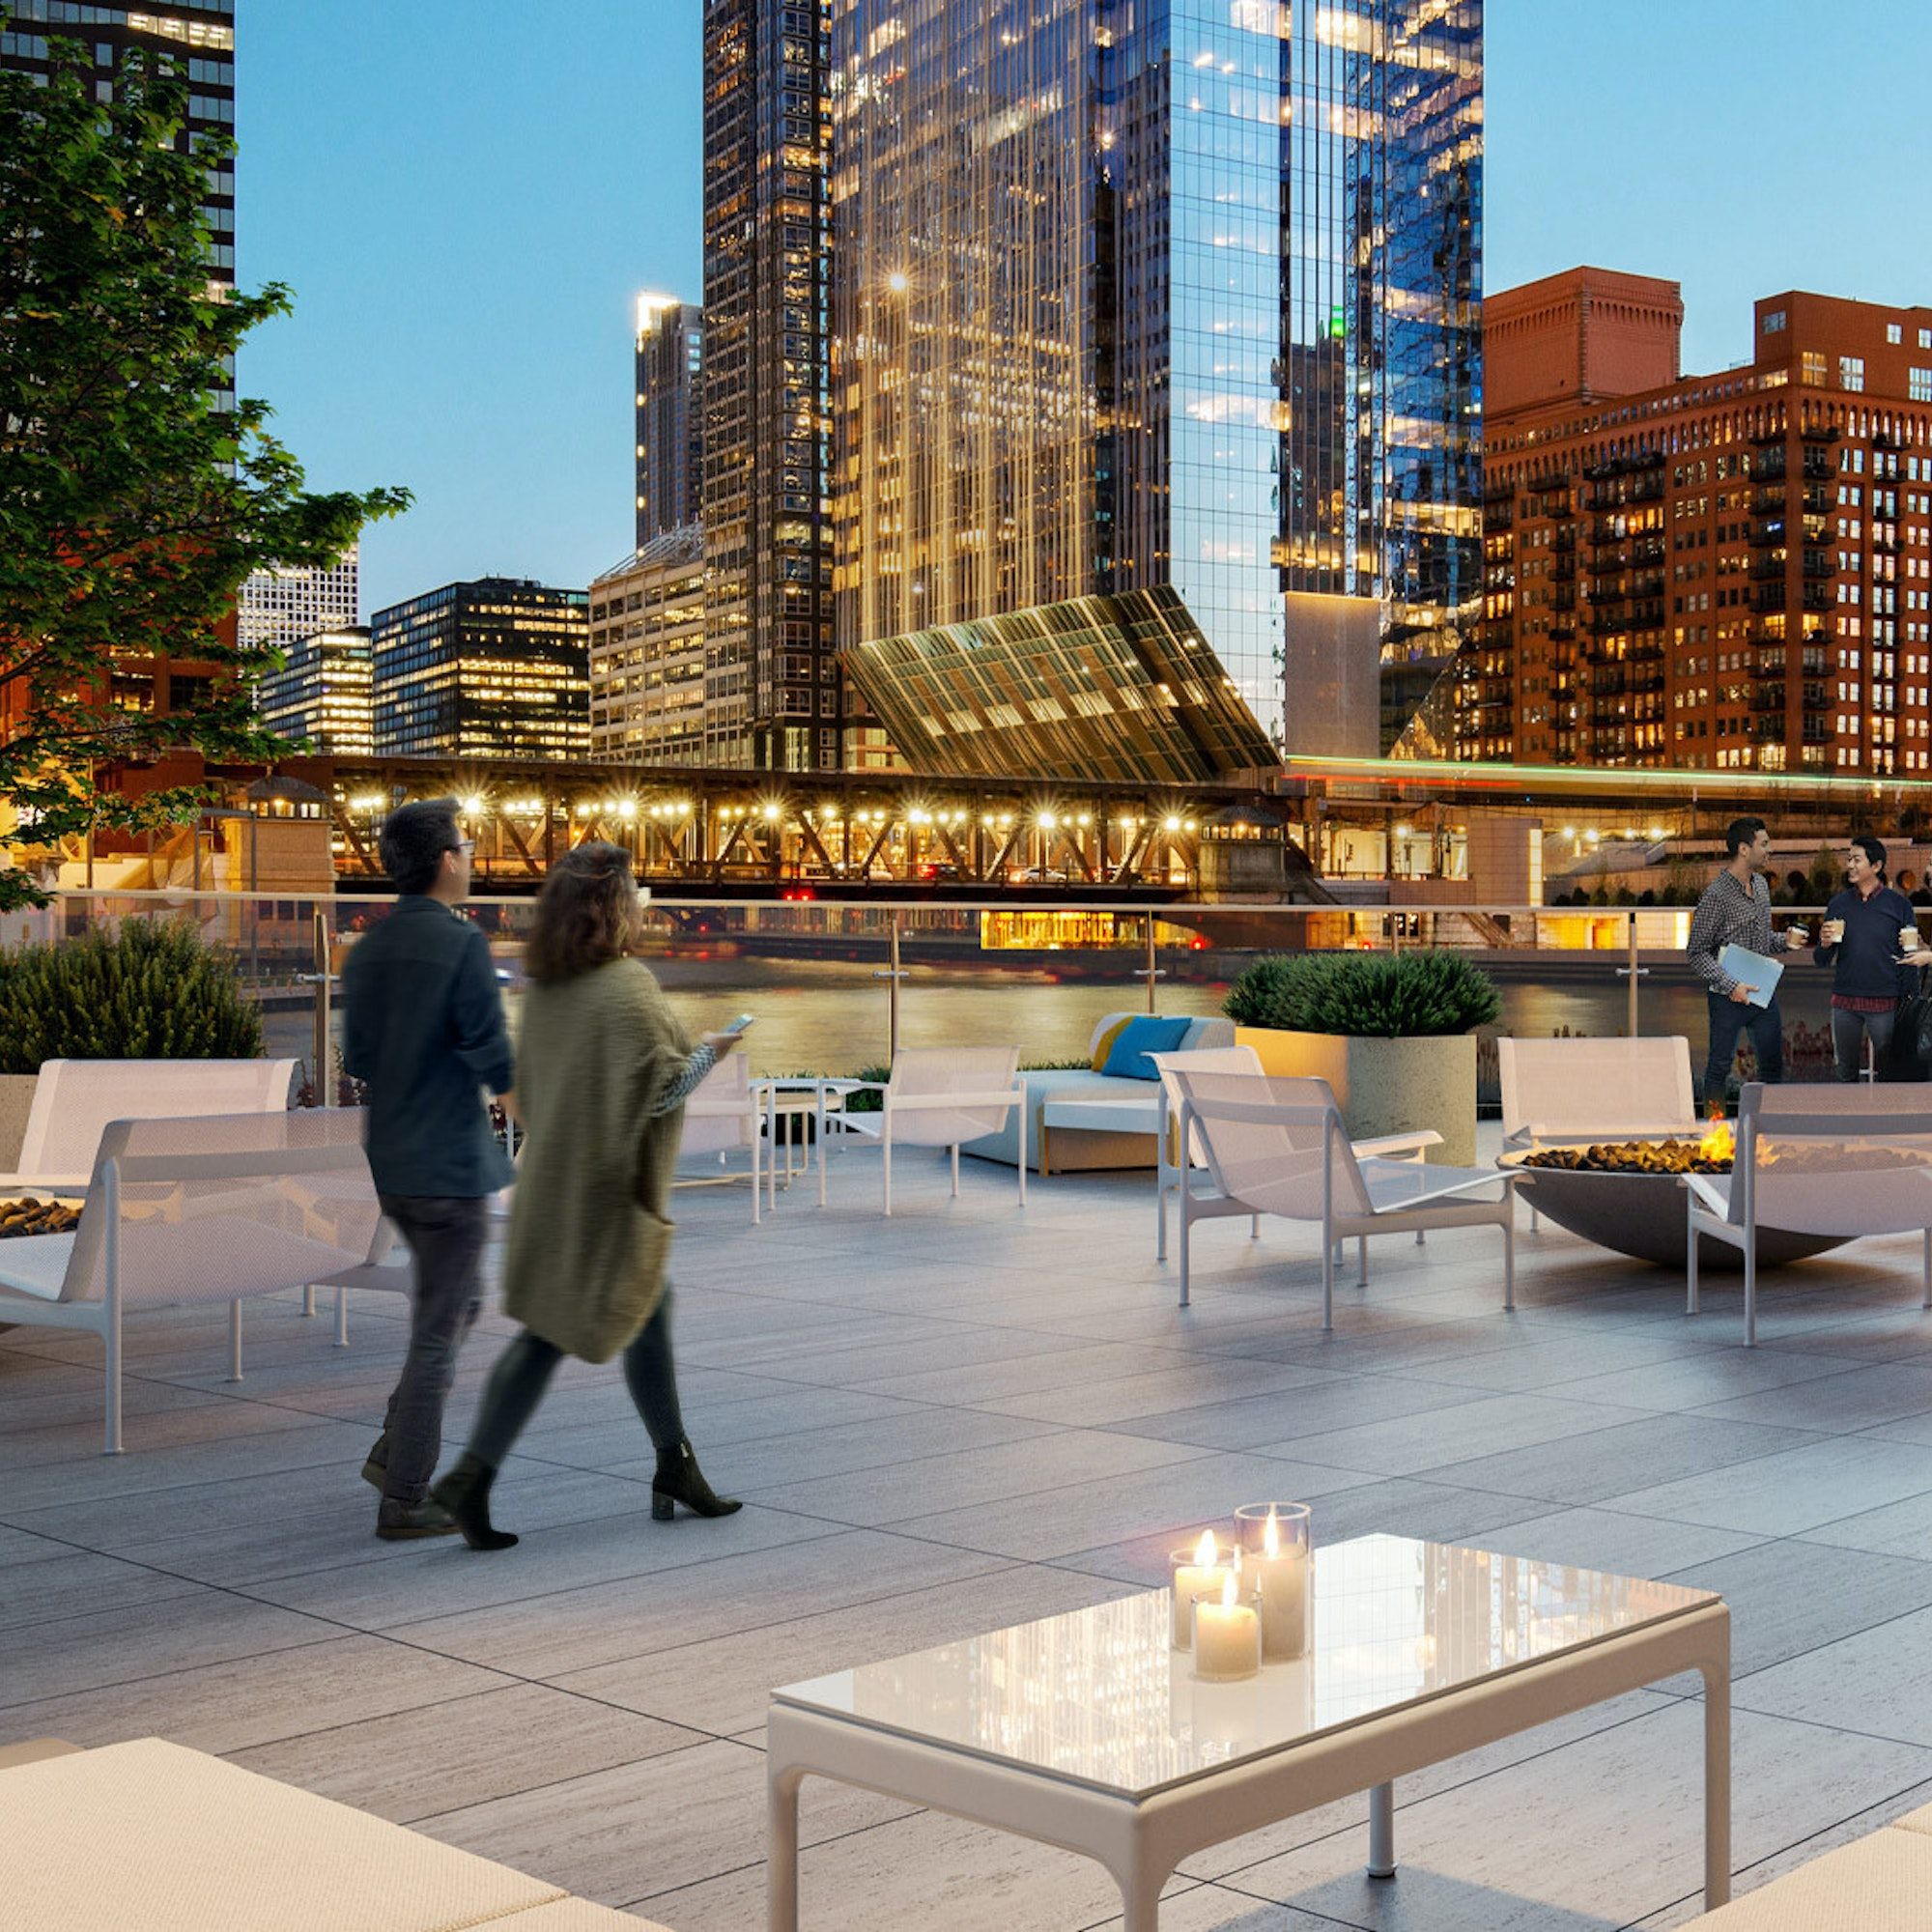 River terrace overlooking downtown